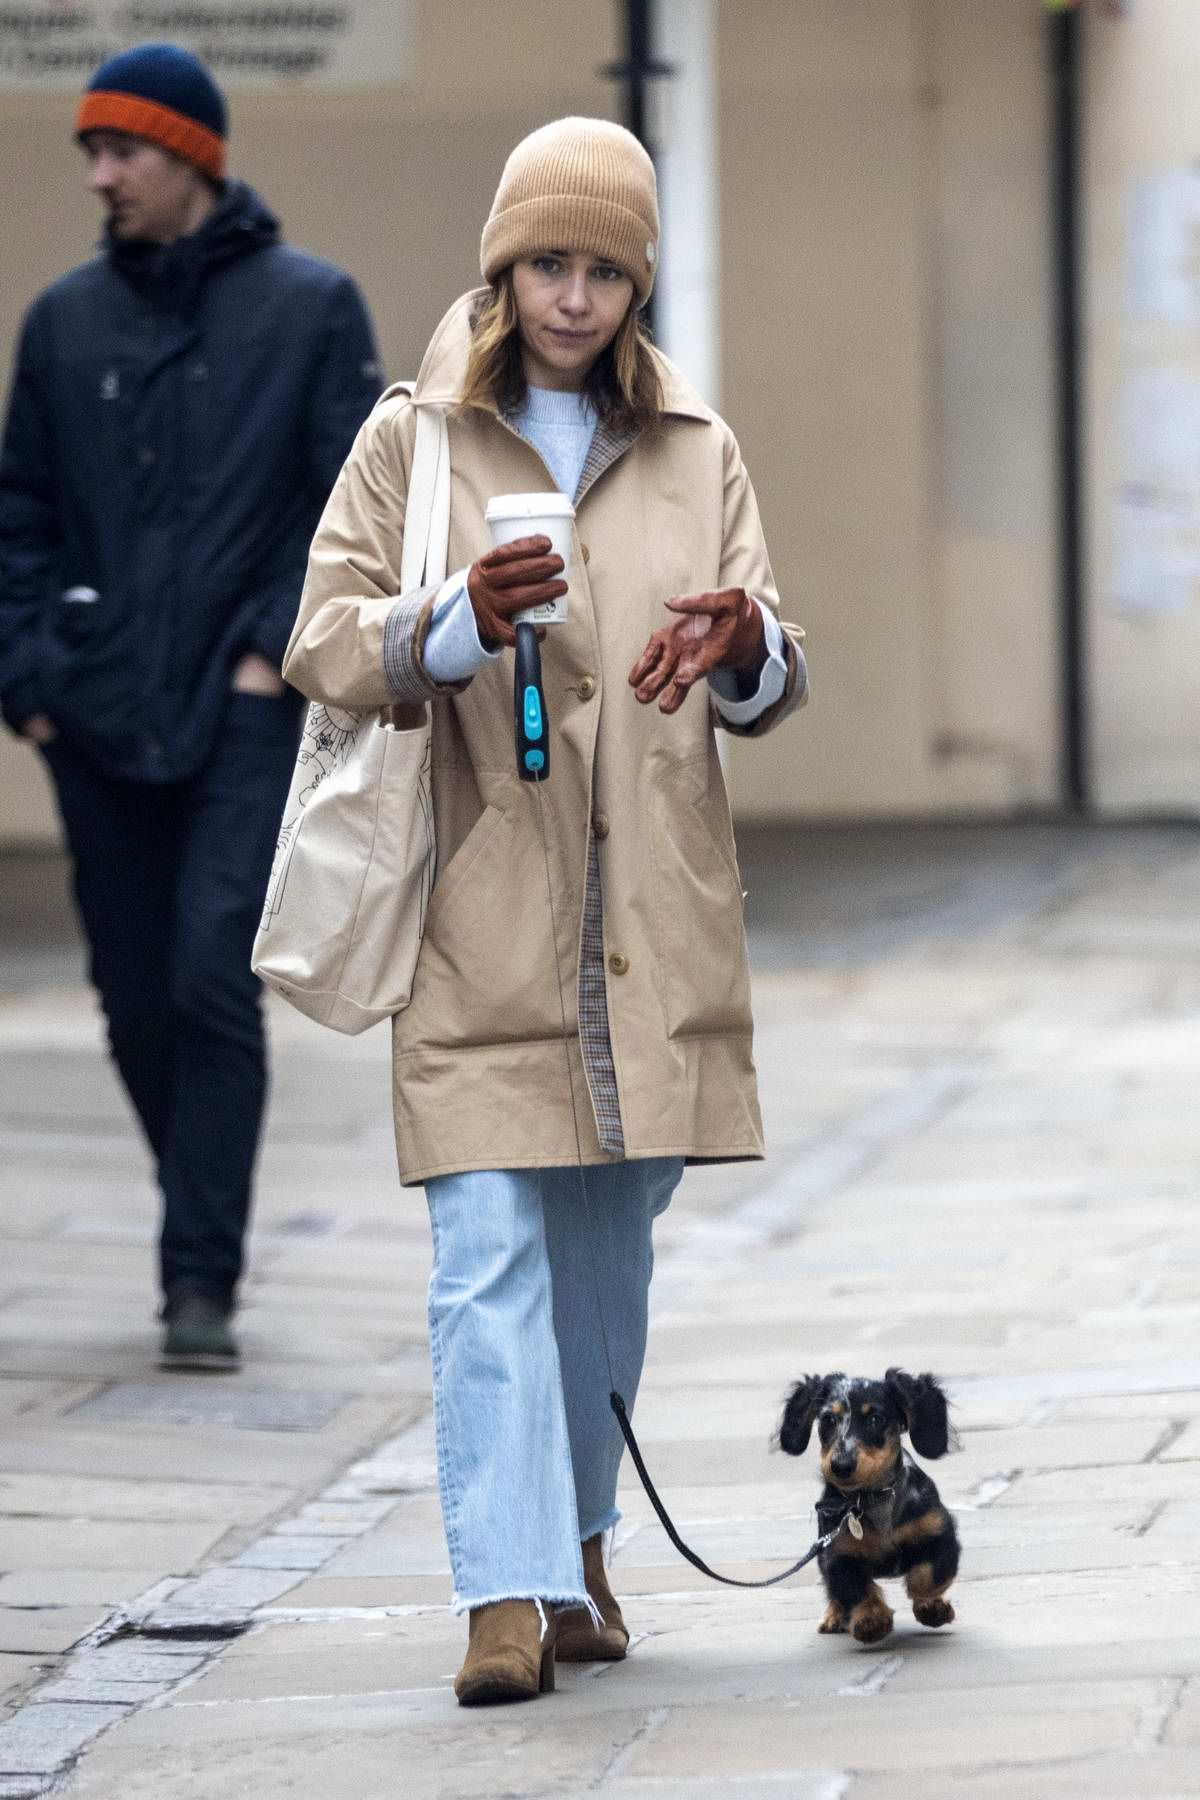 Emilia Clarke takes her dog for a stroll as she steps out for a coffee in London, UK